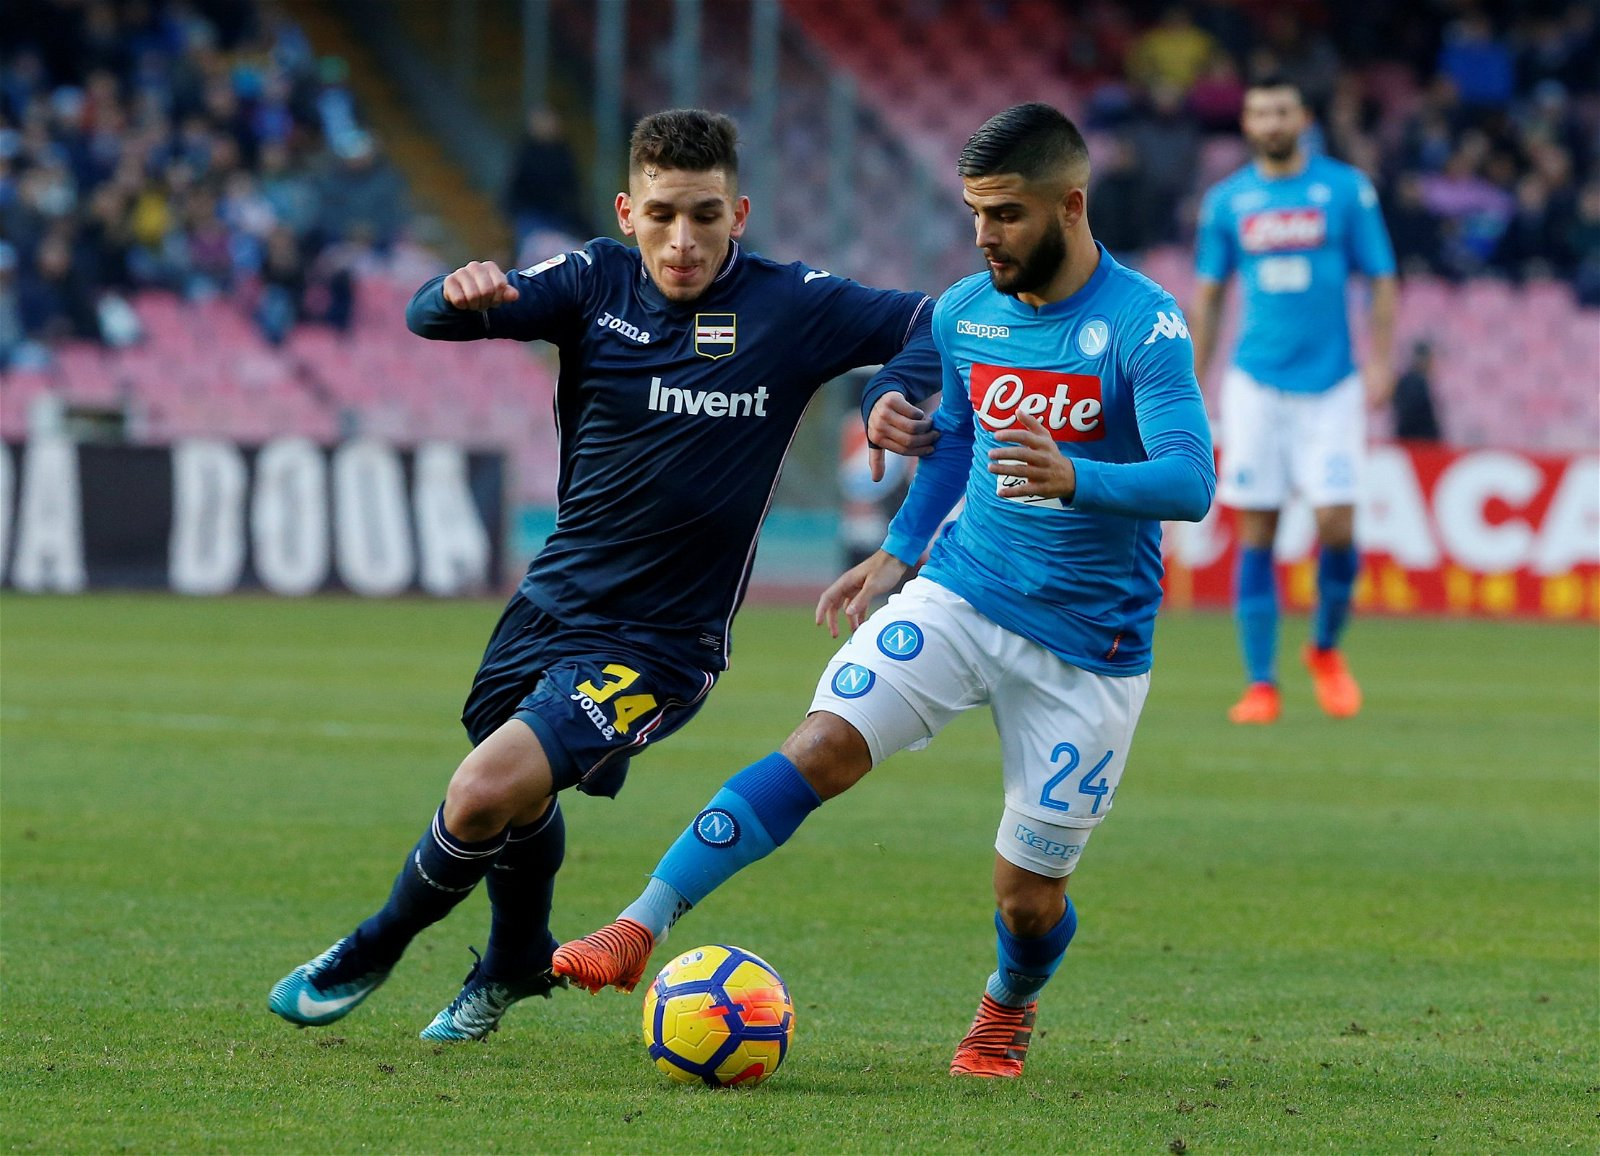 Sampdoria's Lucas Torreira in action against Napoli